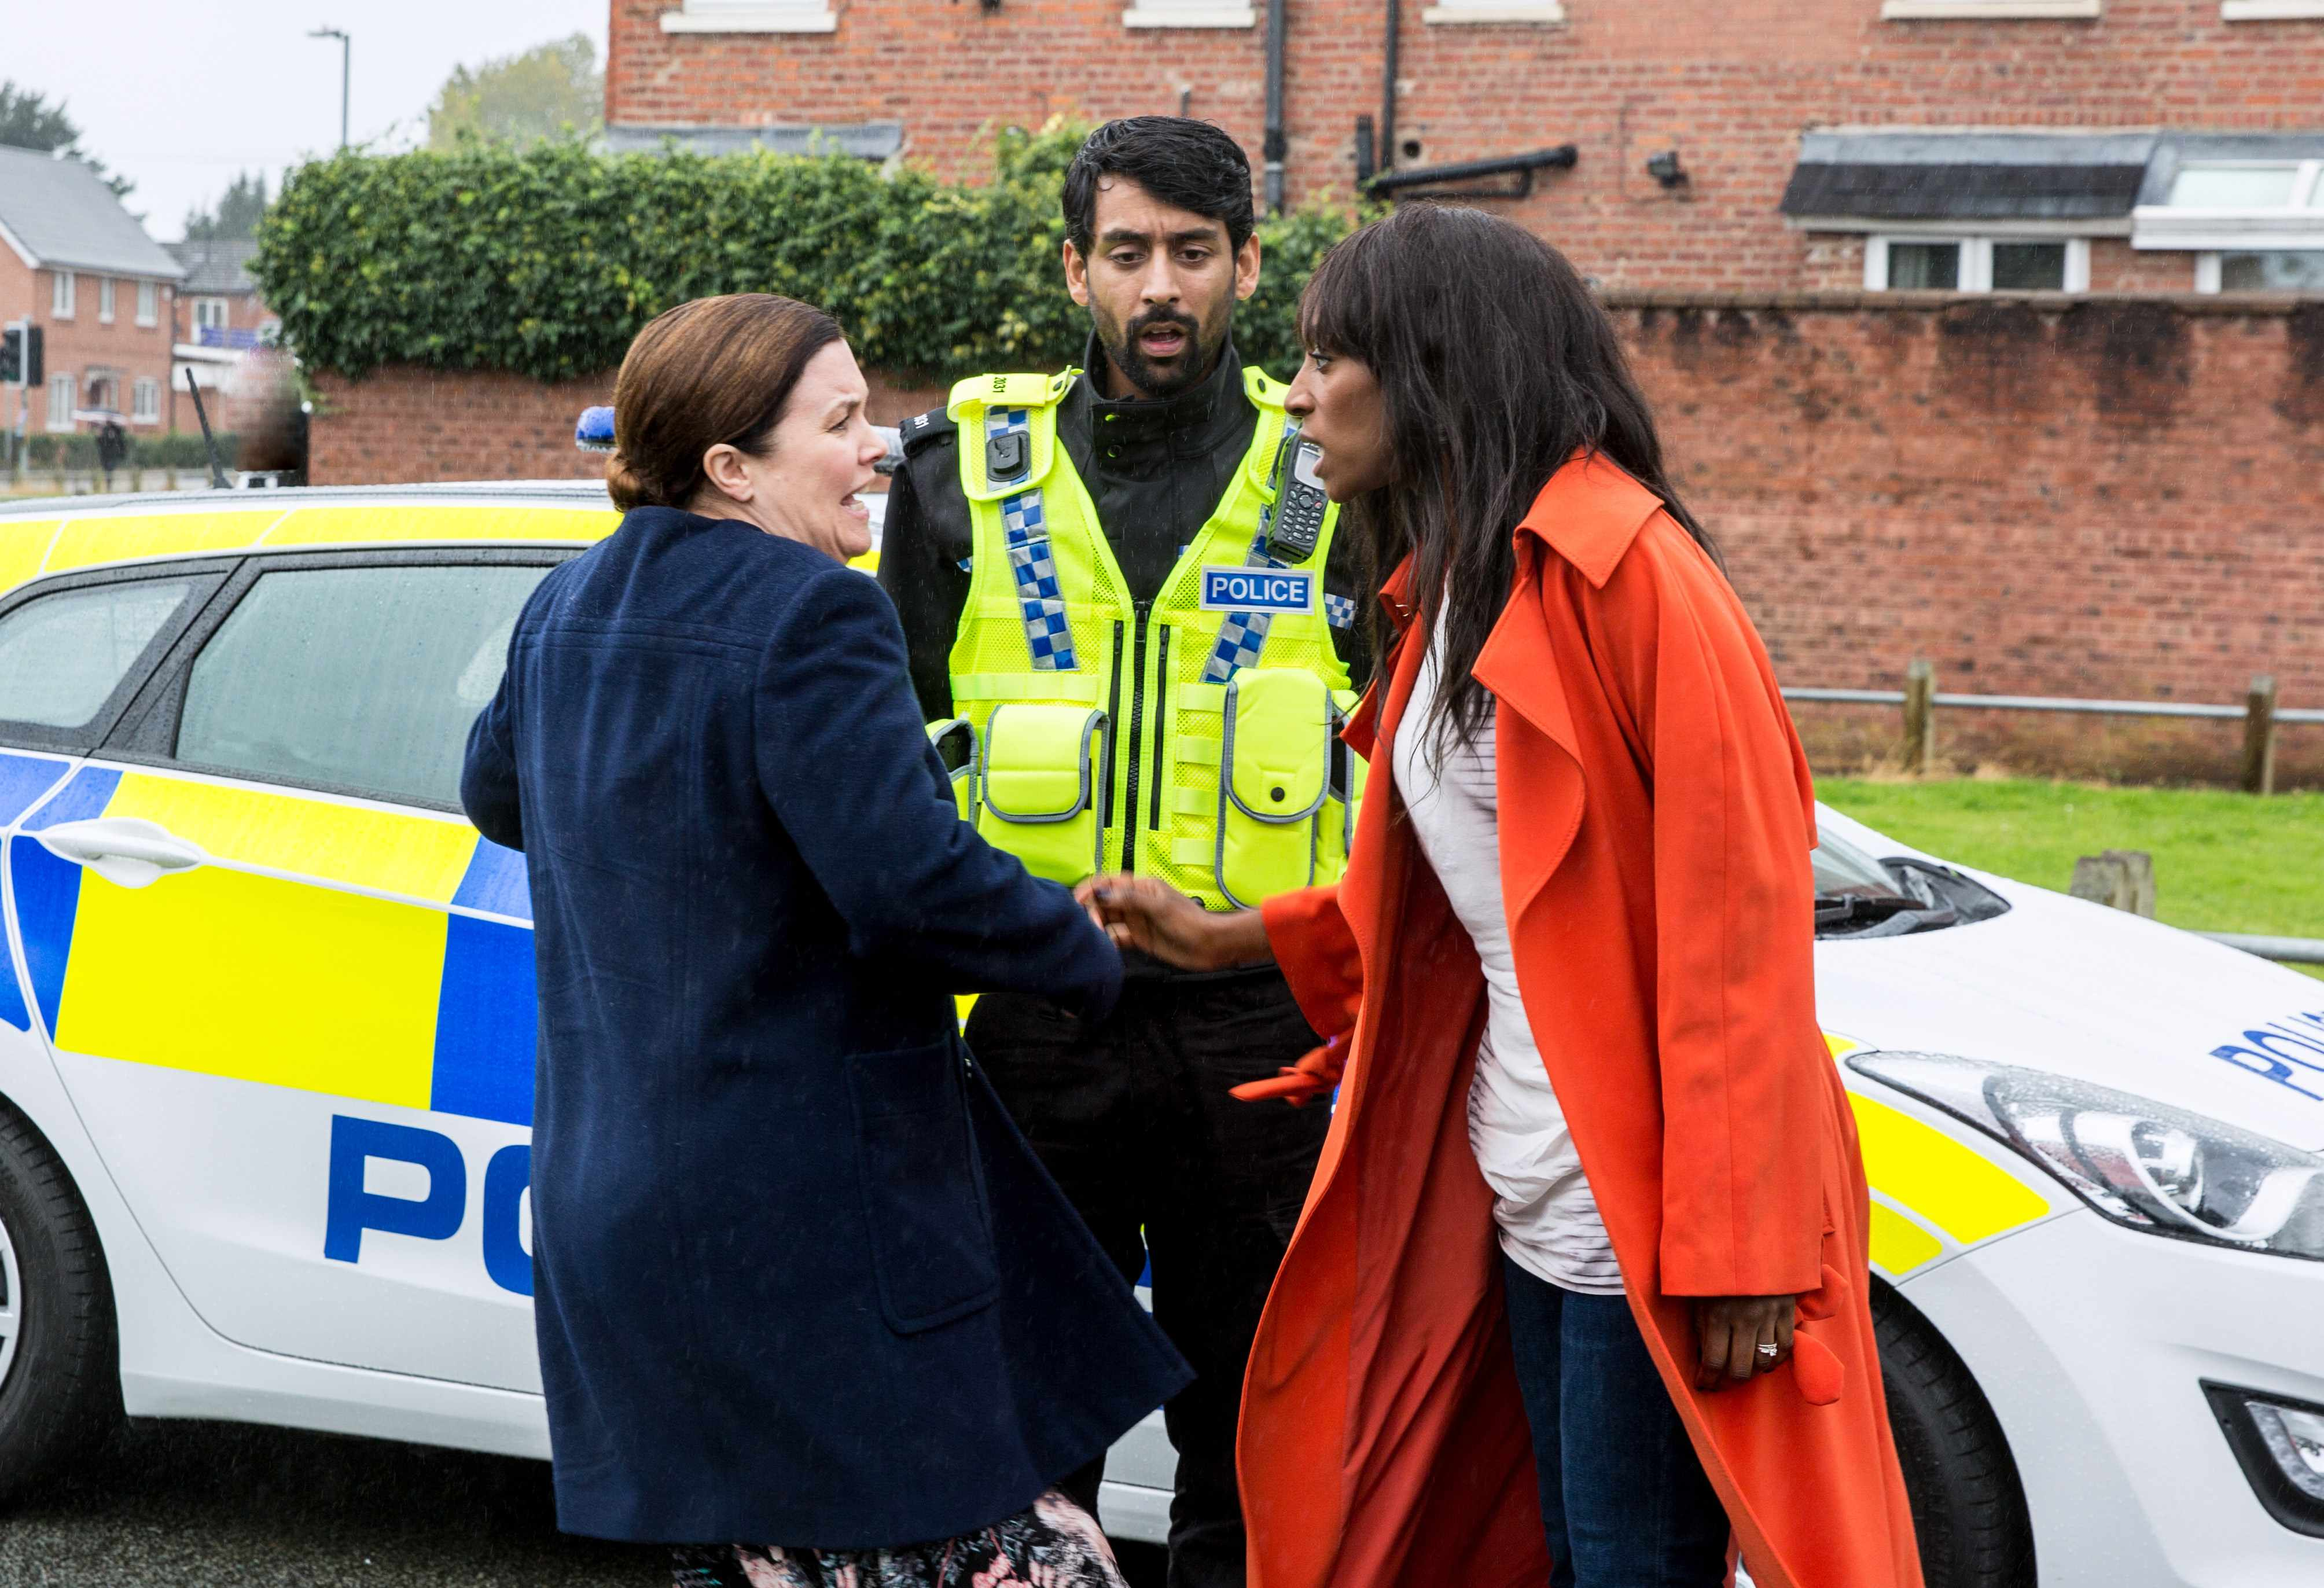 FROM ITV STRICT EMBARGO Print media - No Use Before Tuesday 31st October 2017Online Media -  No Use Before 0700hrs Tuesday 31st October 2017Coronation Street - Ep 9296Wednesday 8th November 2017 - 2nd EpThe police pull Angie Appleton [VICTORIA EKANOYE], over and insist she takes a breath test. As Dev and Mary Taylor [PATTI CLARE] arrive on the scene, Angie realises with disgust that Mary reported her. Picture contact - david.crook@itv.comPhotographer - Mark BruceThis photograph is (C) ITV Plc and can only be reproduced for editorial purposes directly in connection with the programme or event mentioned above, or ITV plc. Once made available by ITV plc Picture Desk, this photograph can be reproduced once only up until the transmission [TX] date and no reproduction fee will be charged. Any subsequent usage may incur a fee. This photograph must not be manipulated [excluding basic cropping] in a manner which alters the visual appearance of the person photographed deemed detrimental or inappropriate by ITV plc Picture Desk. This photograph must not be syndicated to any other company, publication or website, or permanently archived, without the express written permission of ITV Plc Picture Desk. Full Terms and conditions are available on the website www.itvpictures.com